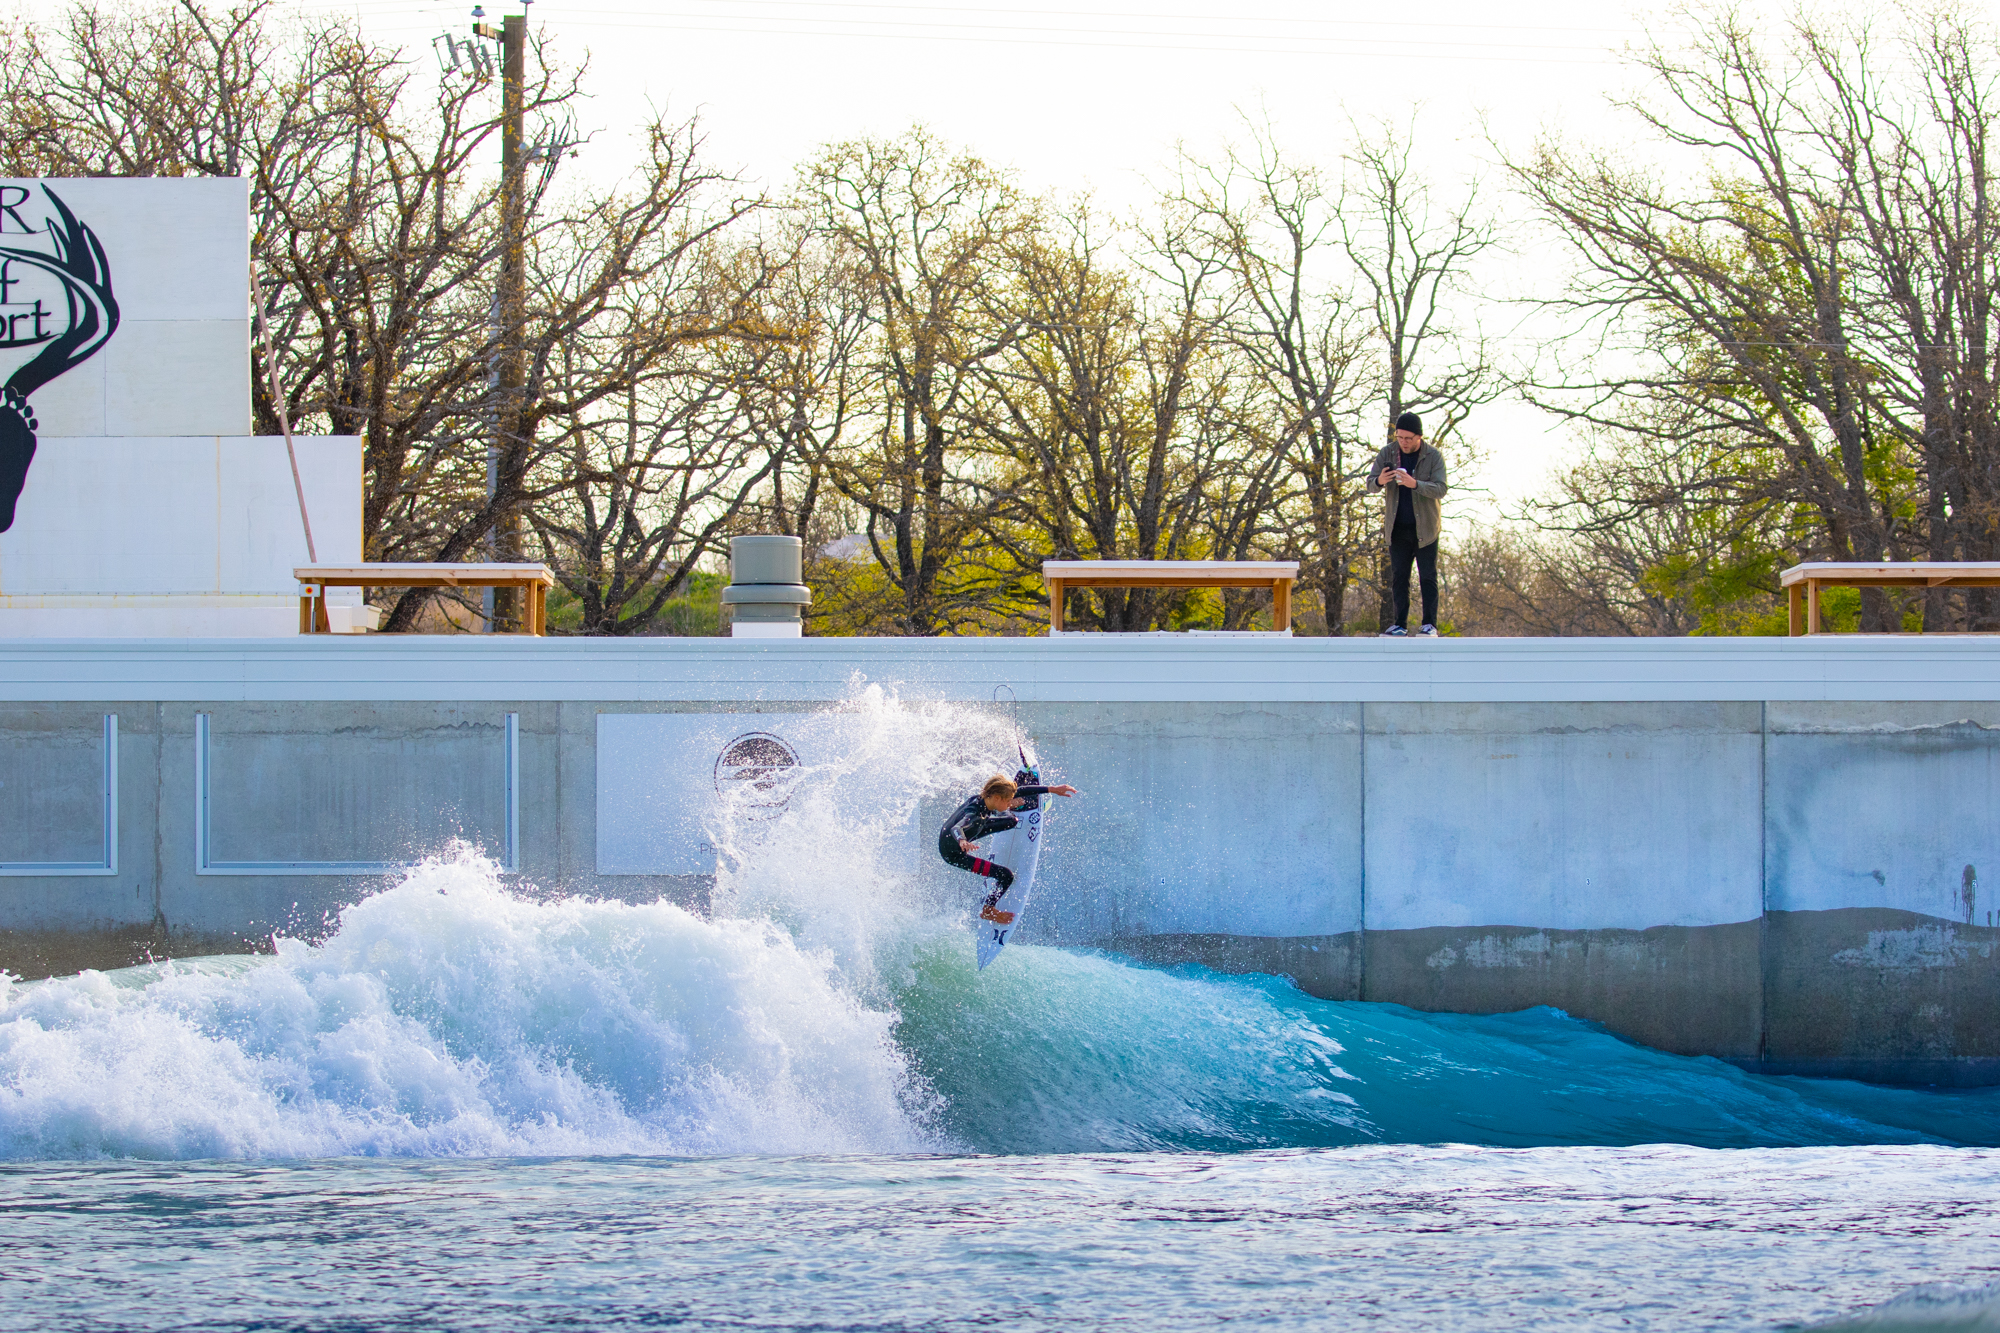 Wrongful Death Lawsuit Filed Against BSR Surf Resort in Waco